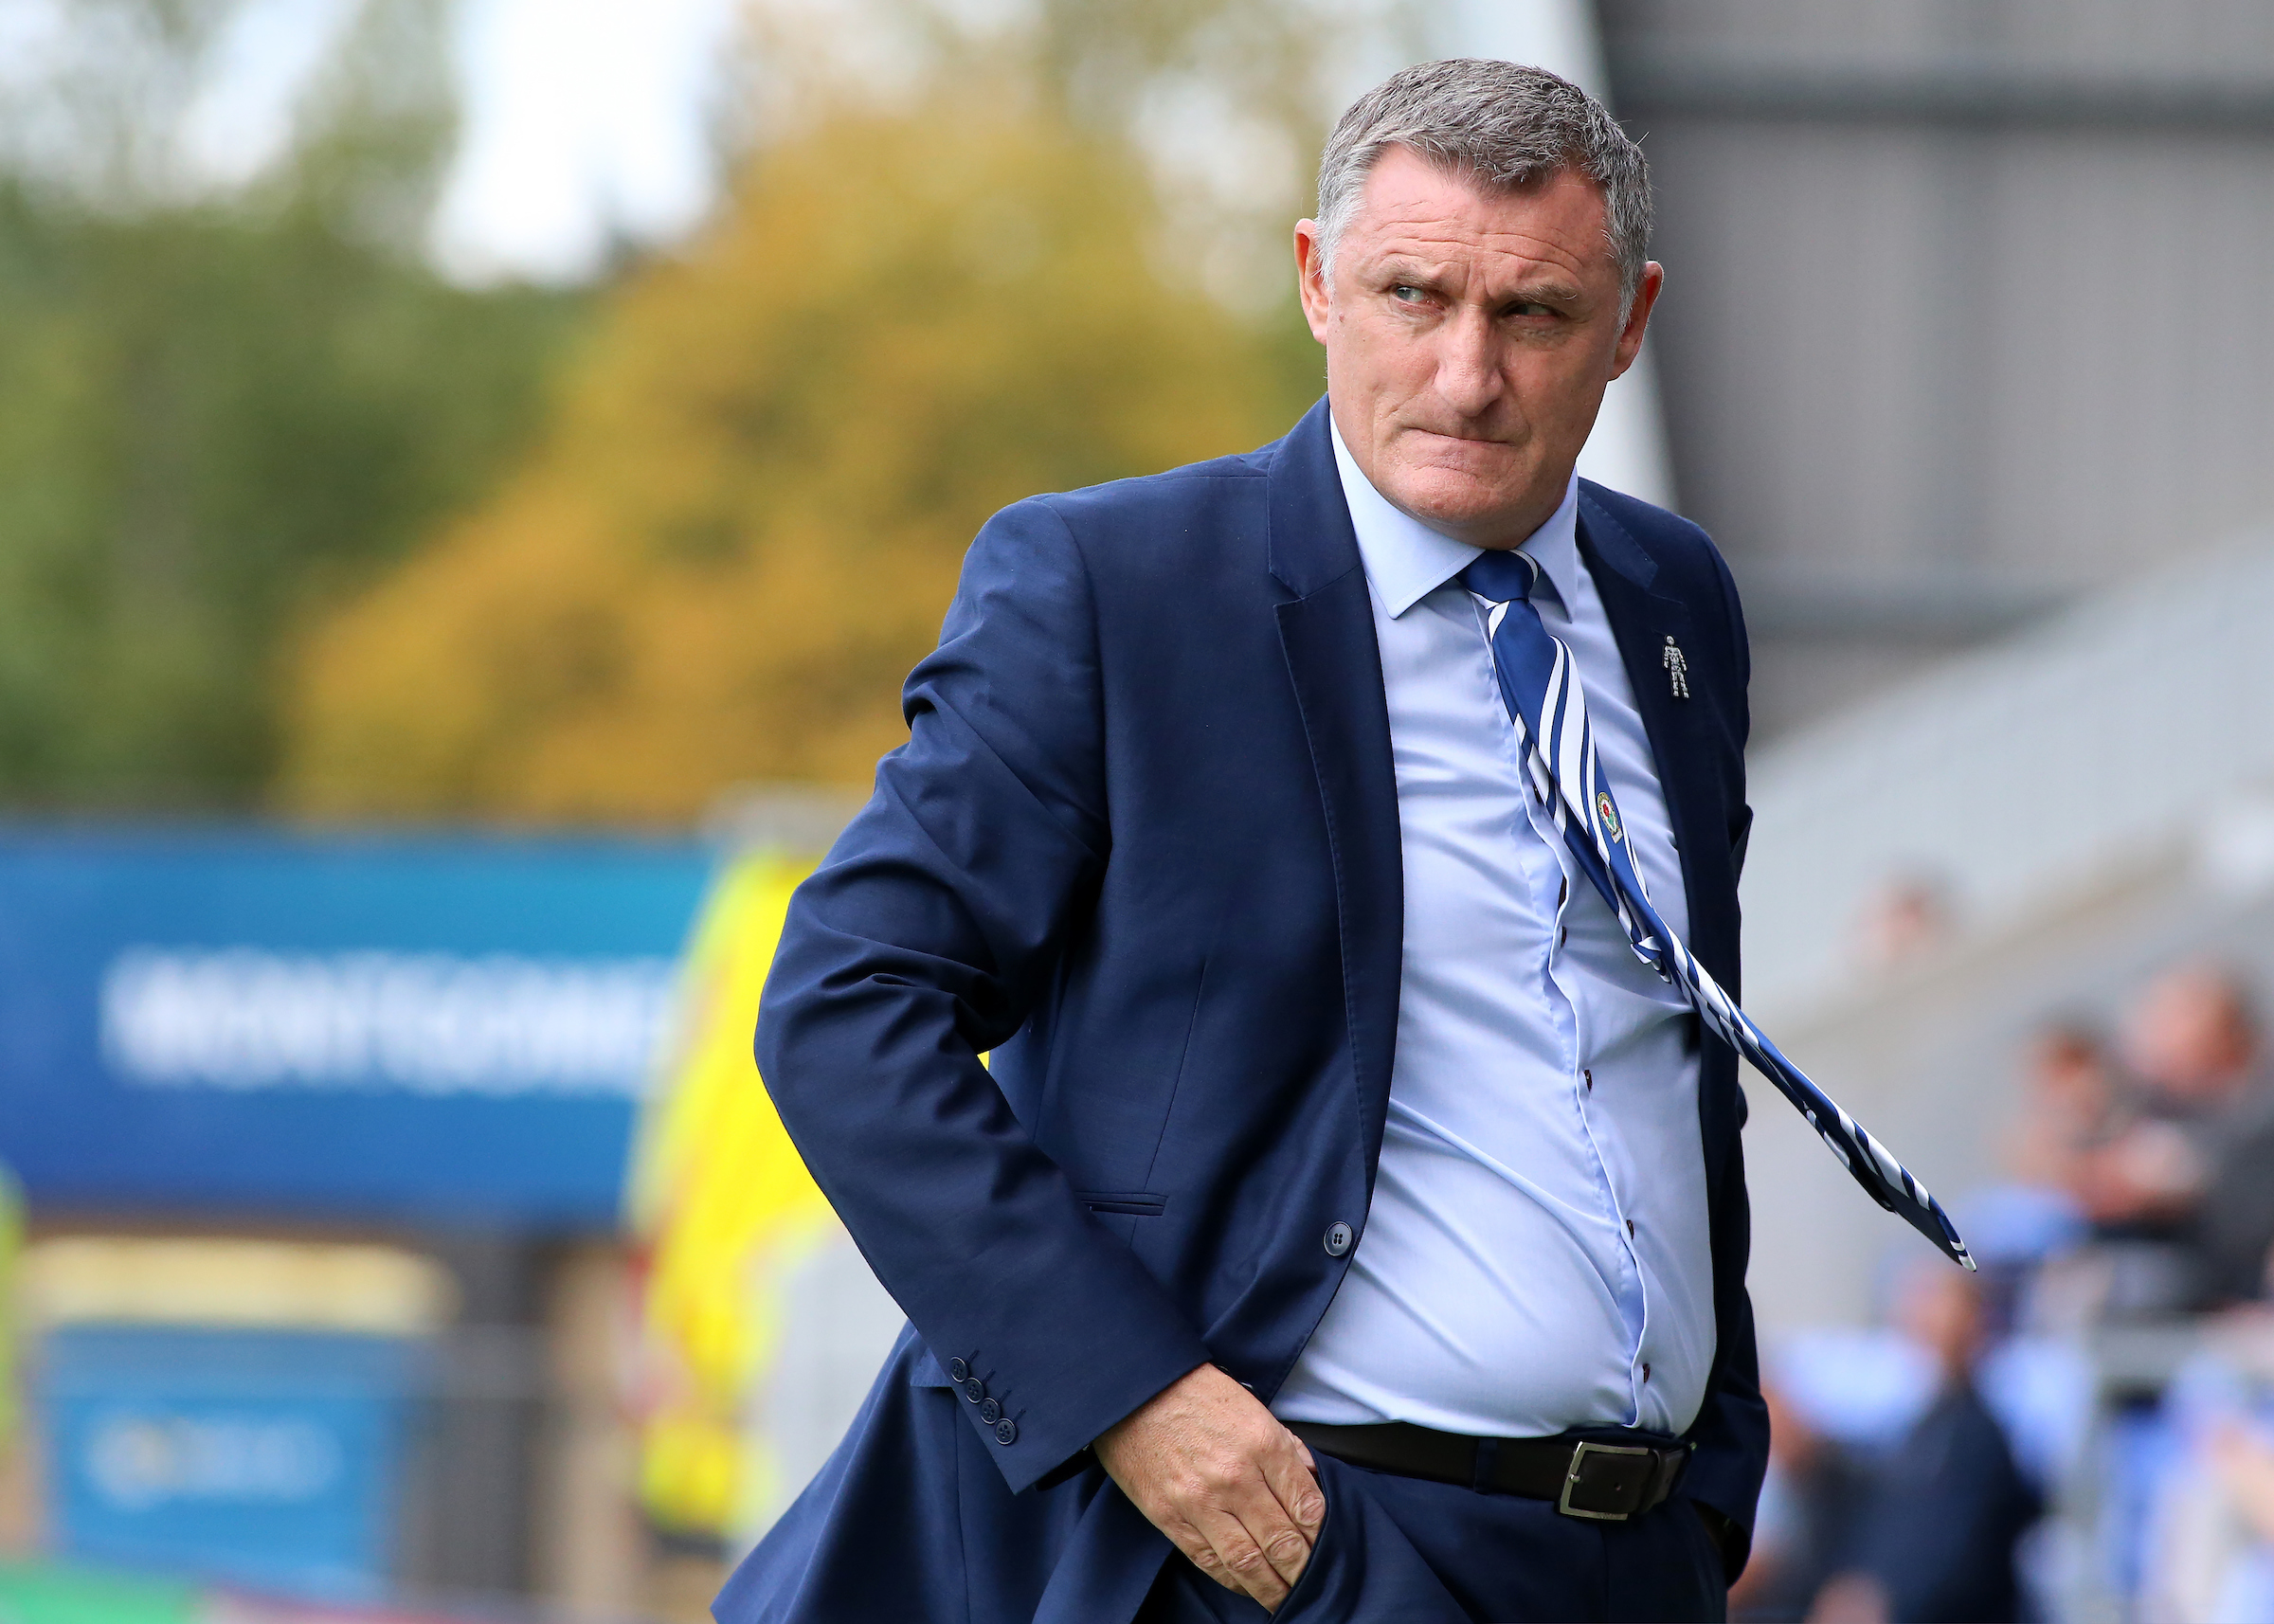 Tony Mowbray's side have won 19 points from a possible 24 to move in to the top six of League One